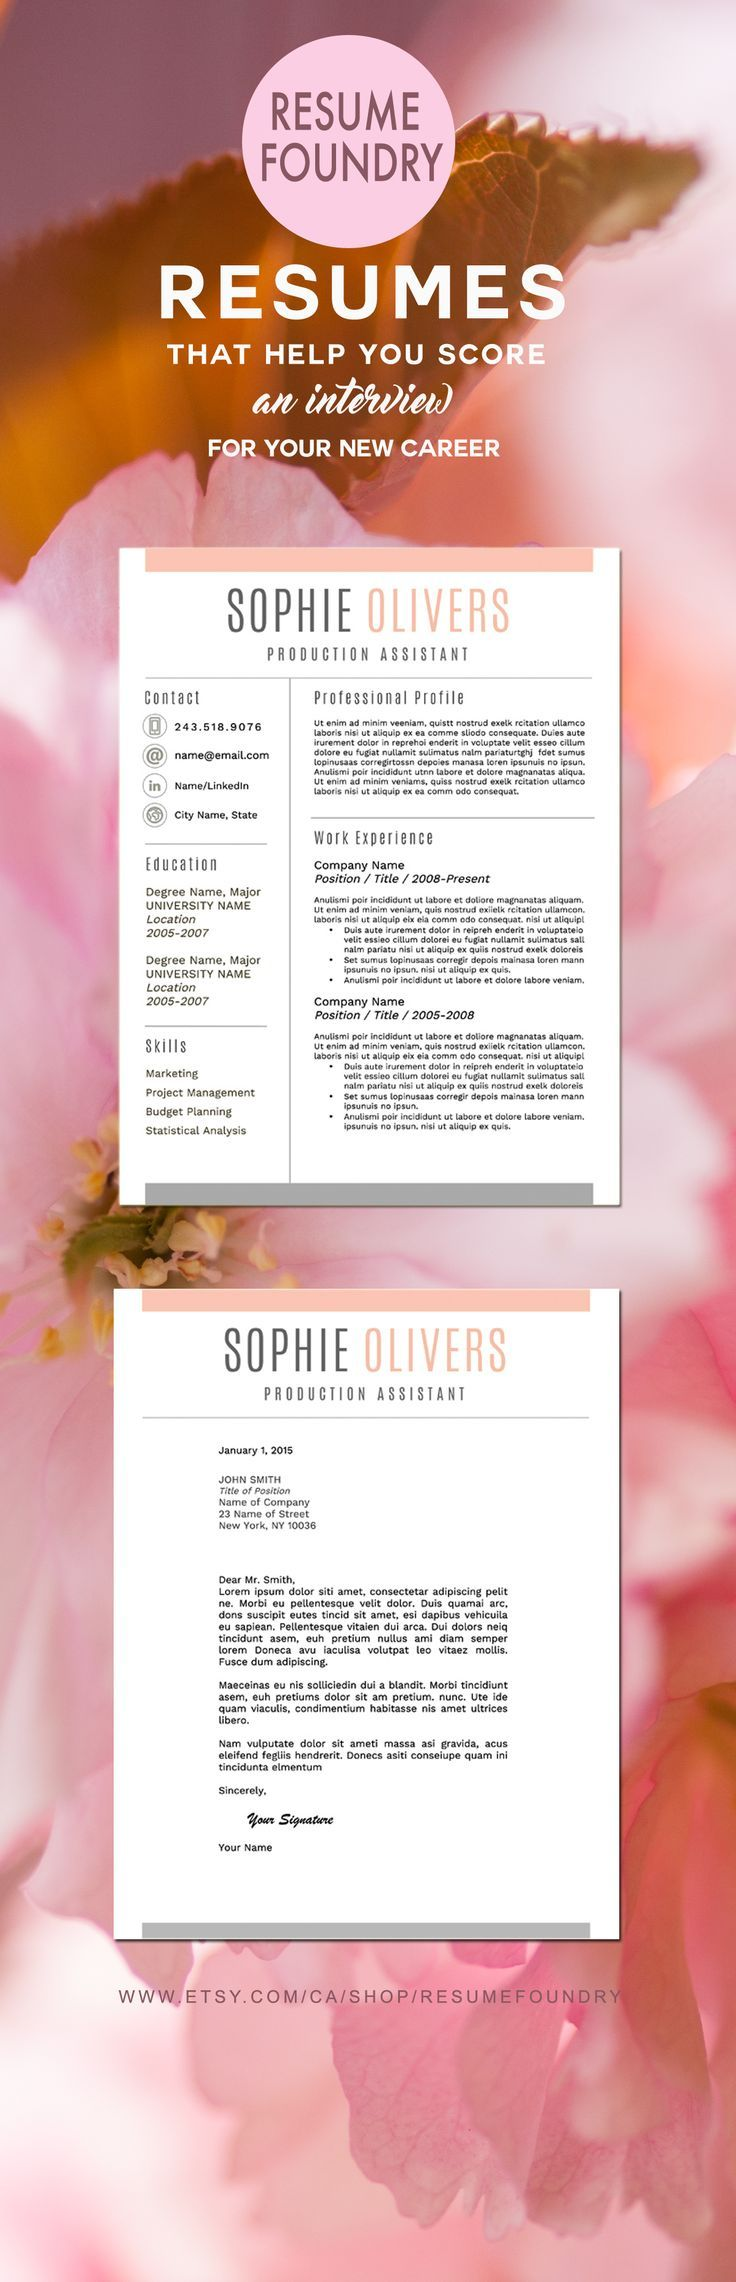 best ideas about fashion resume fashion cv cv elegant resume template instant for use microsoft word resume foundry